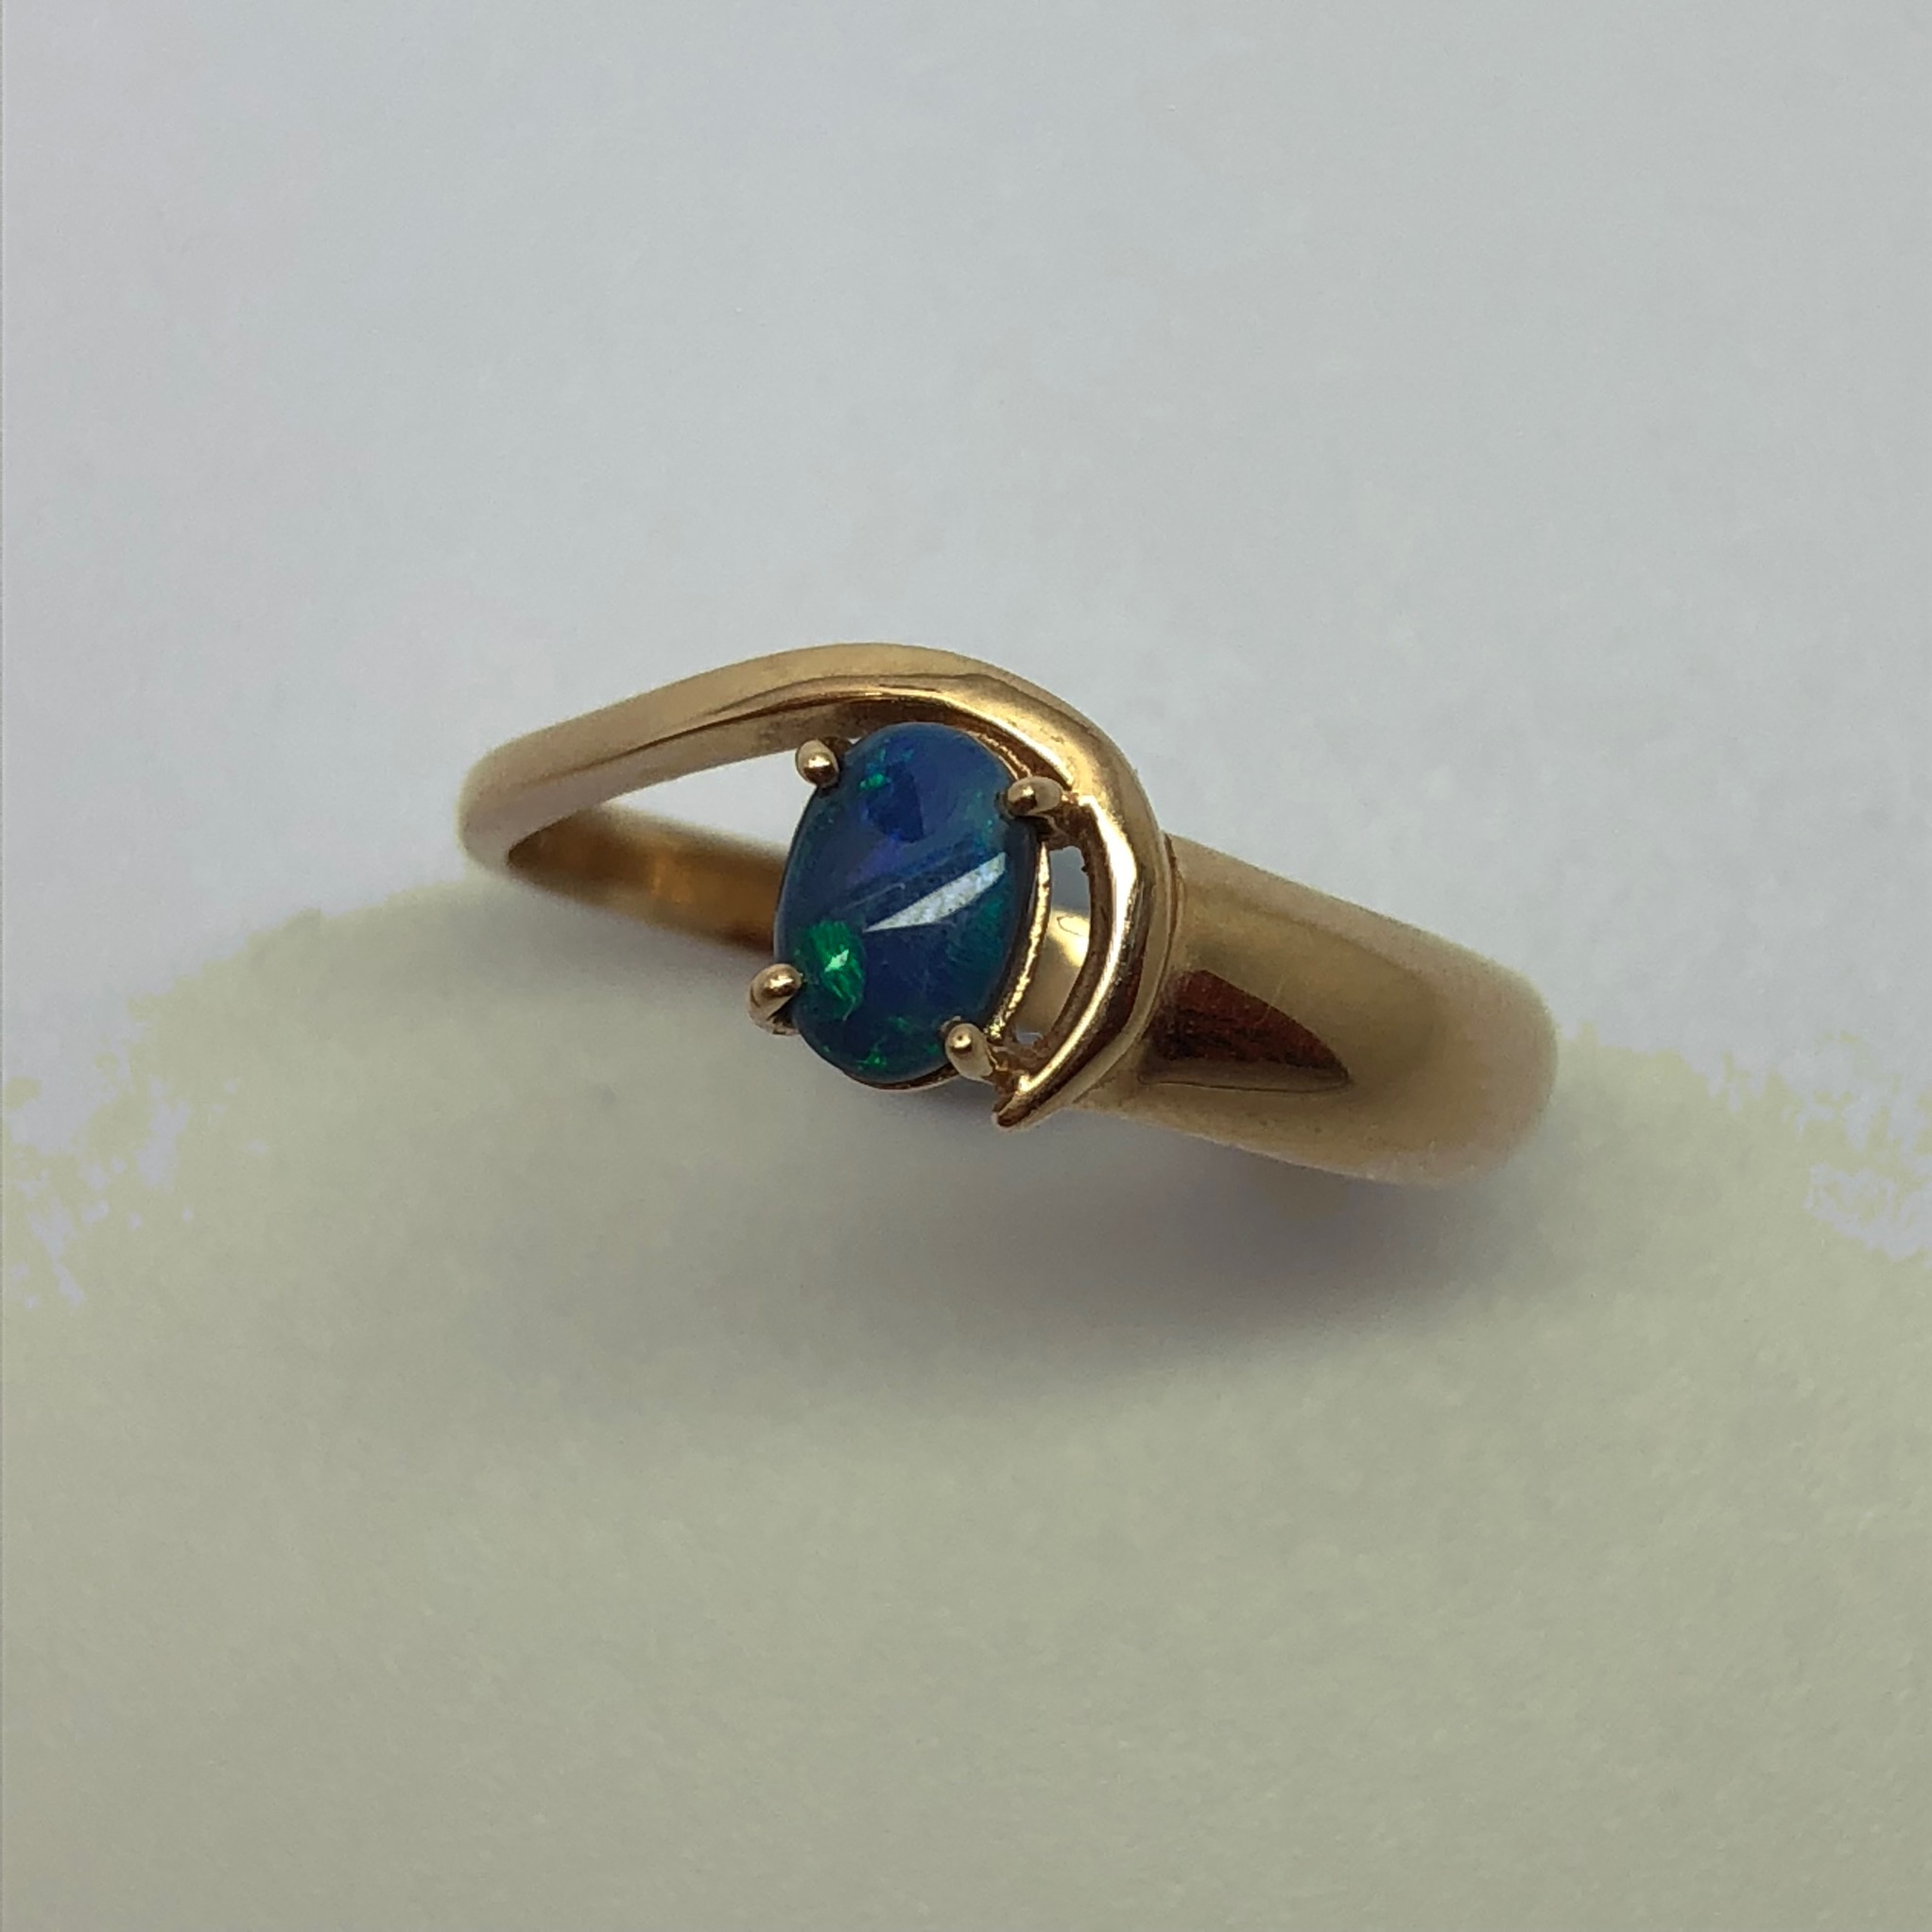 boulder opal sotheby magnificent auctions current rings lr lot engagement webb jewellery s david en jewels ecatalogue